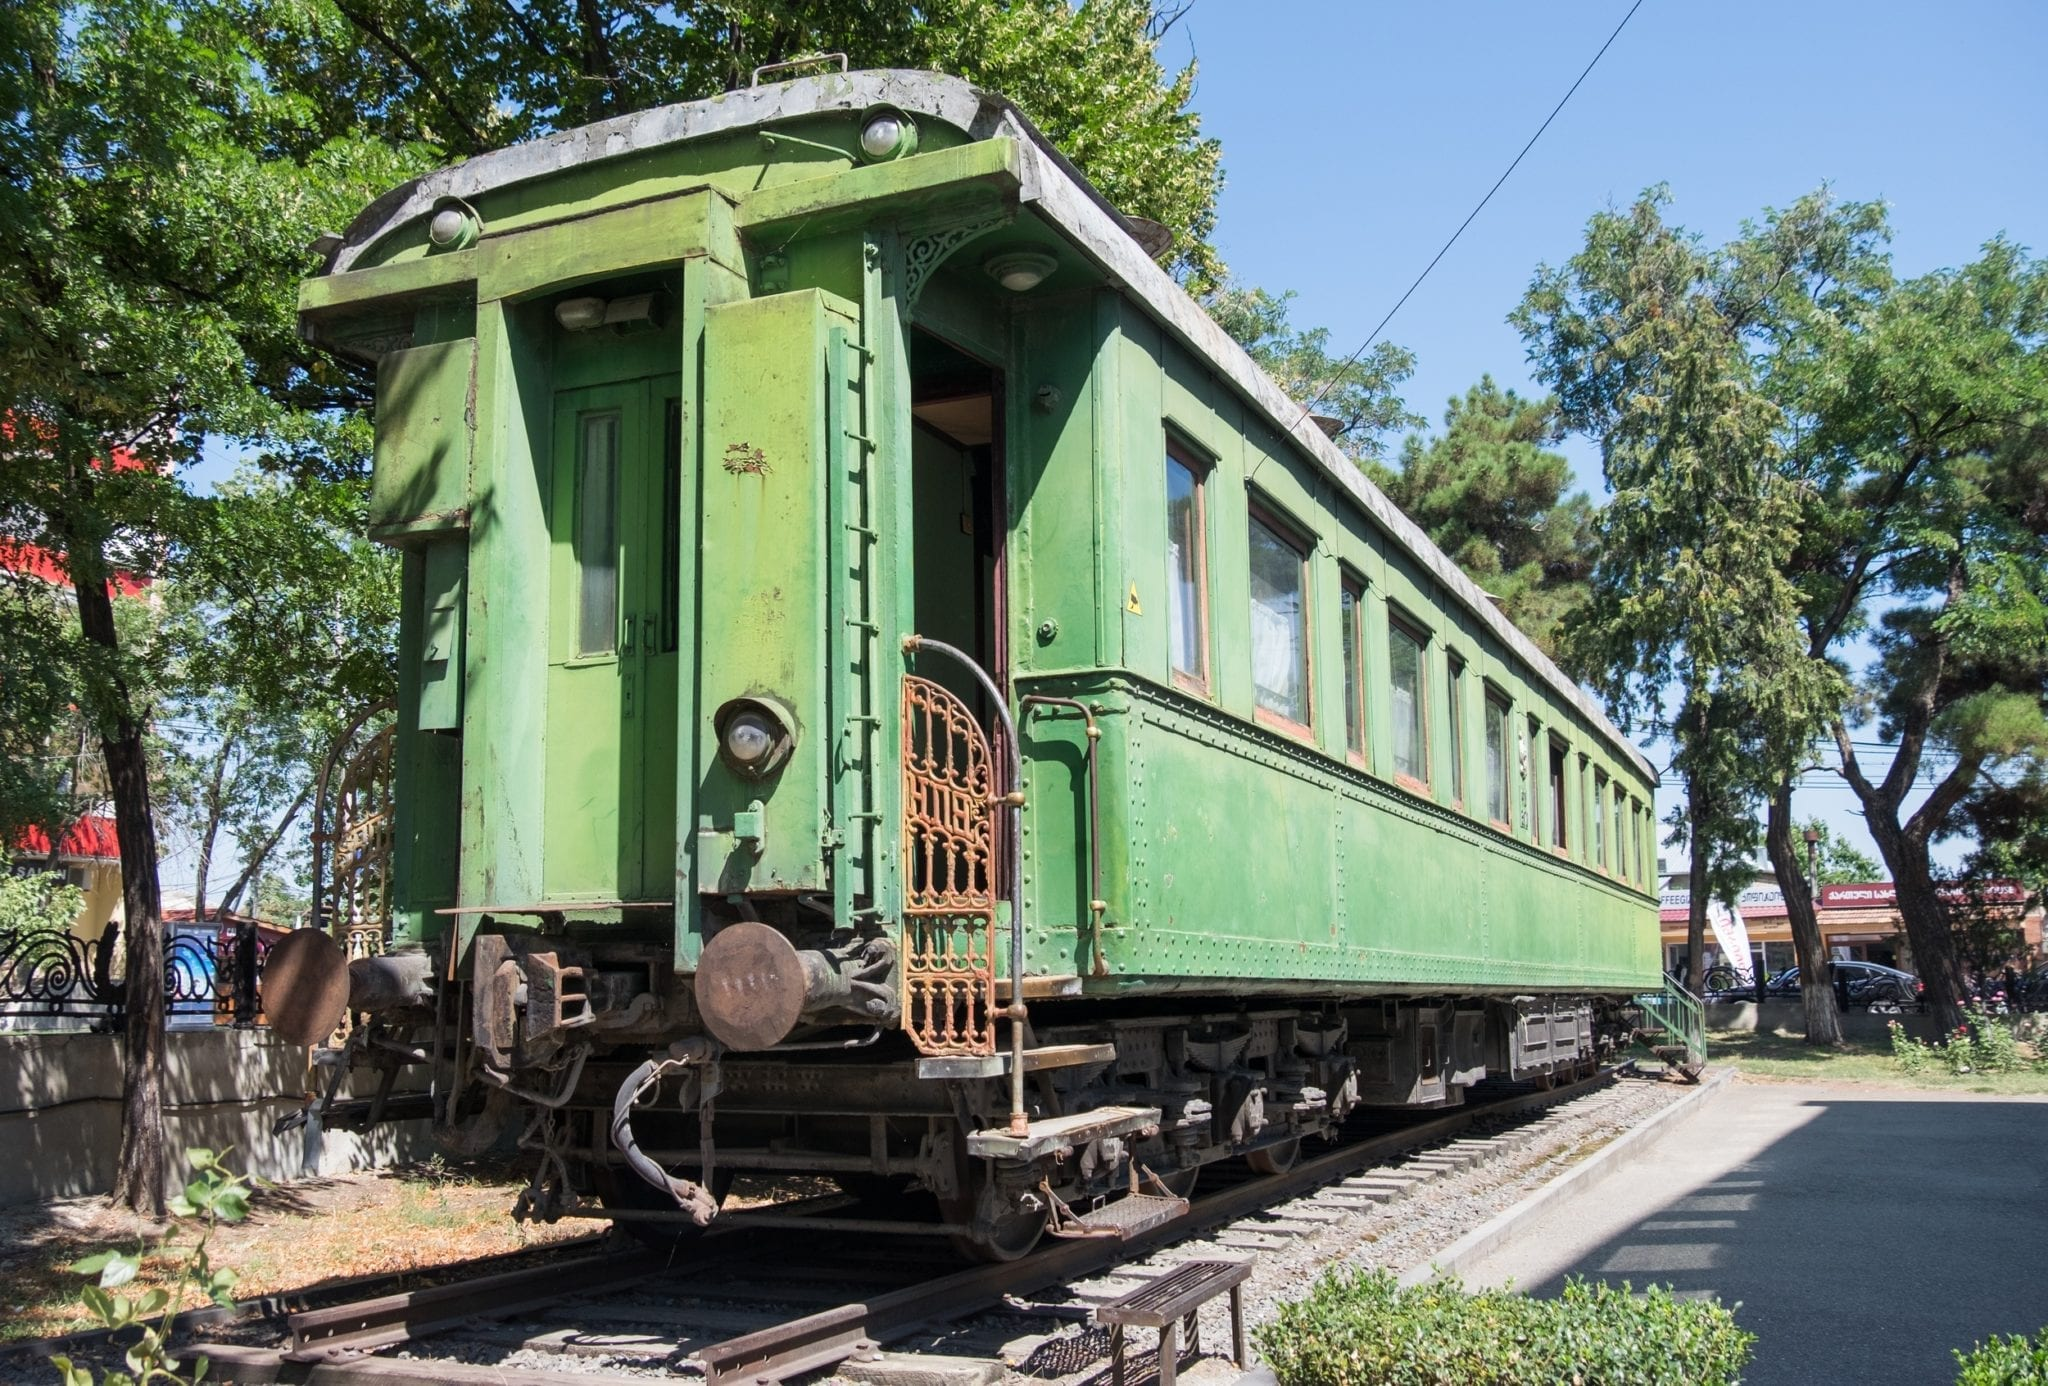 A bright green train car sitting on tracks. The train was Stalin's.